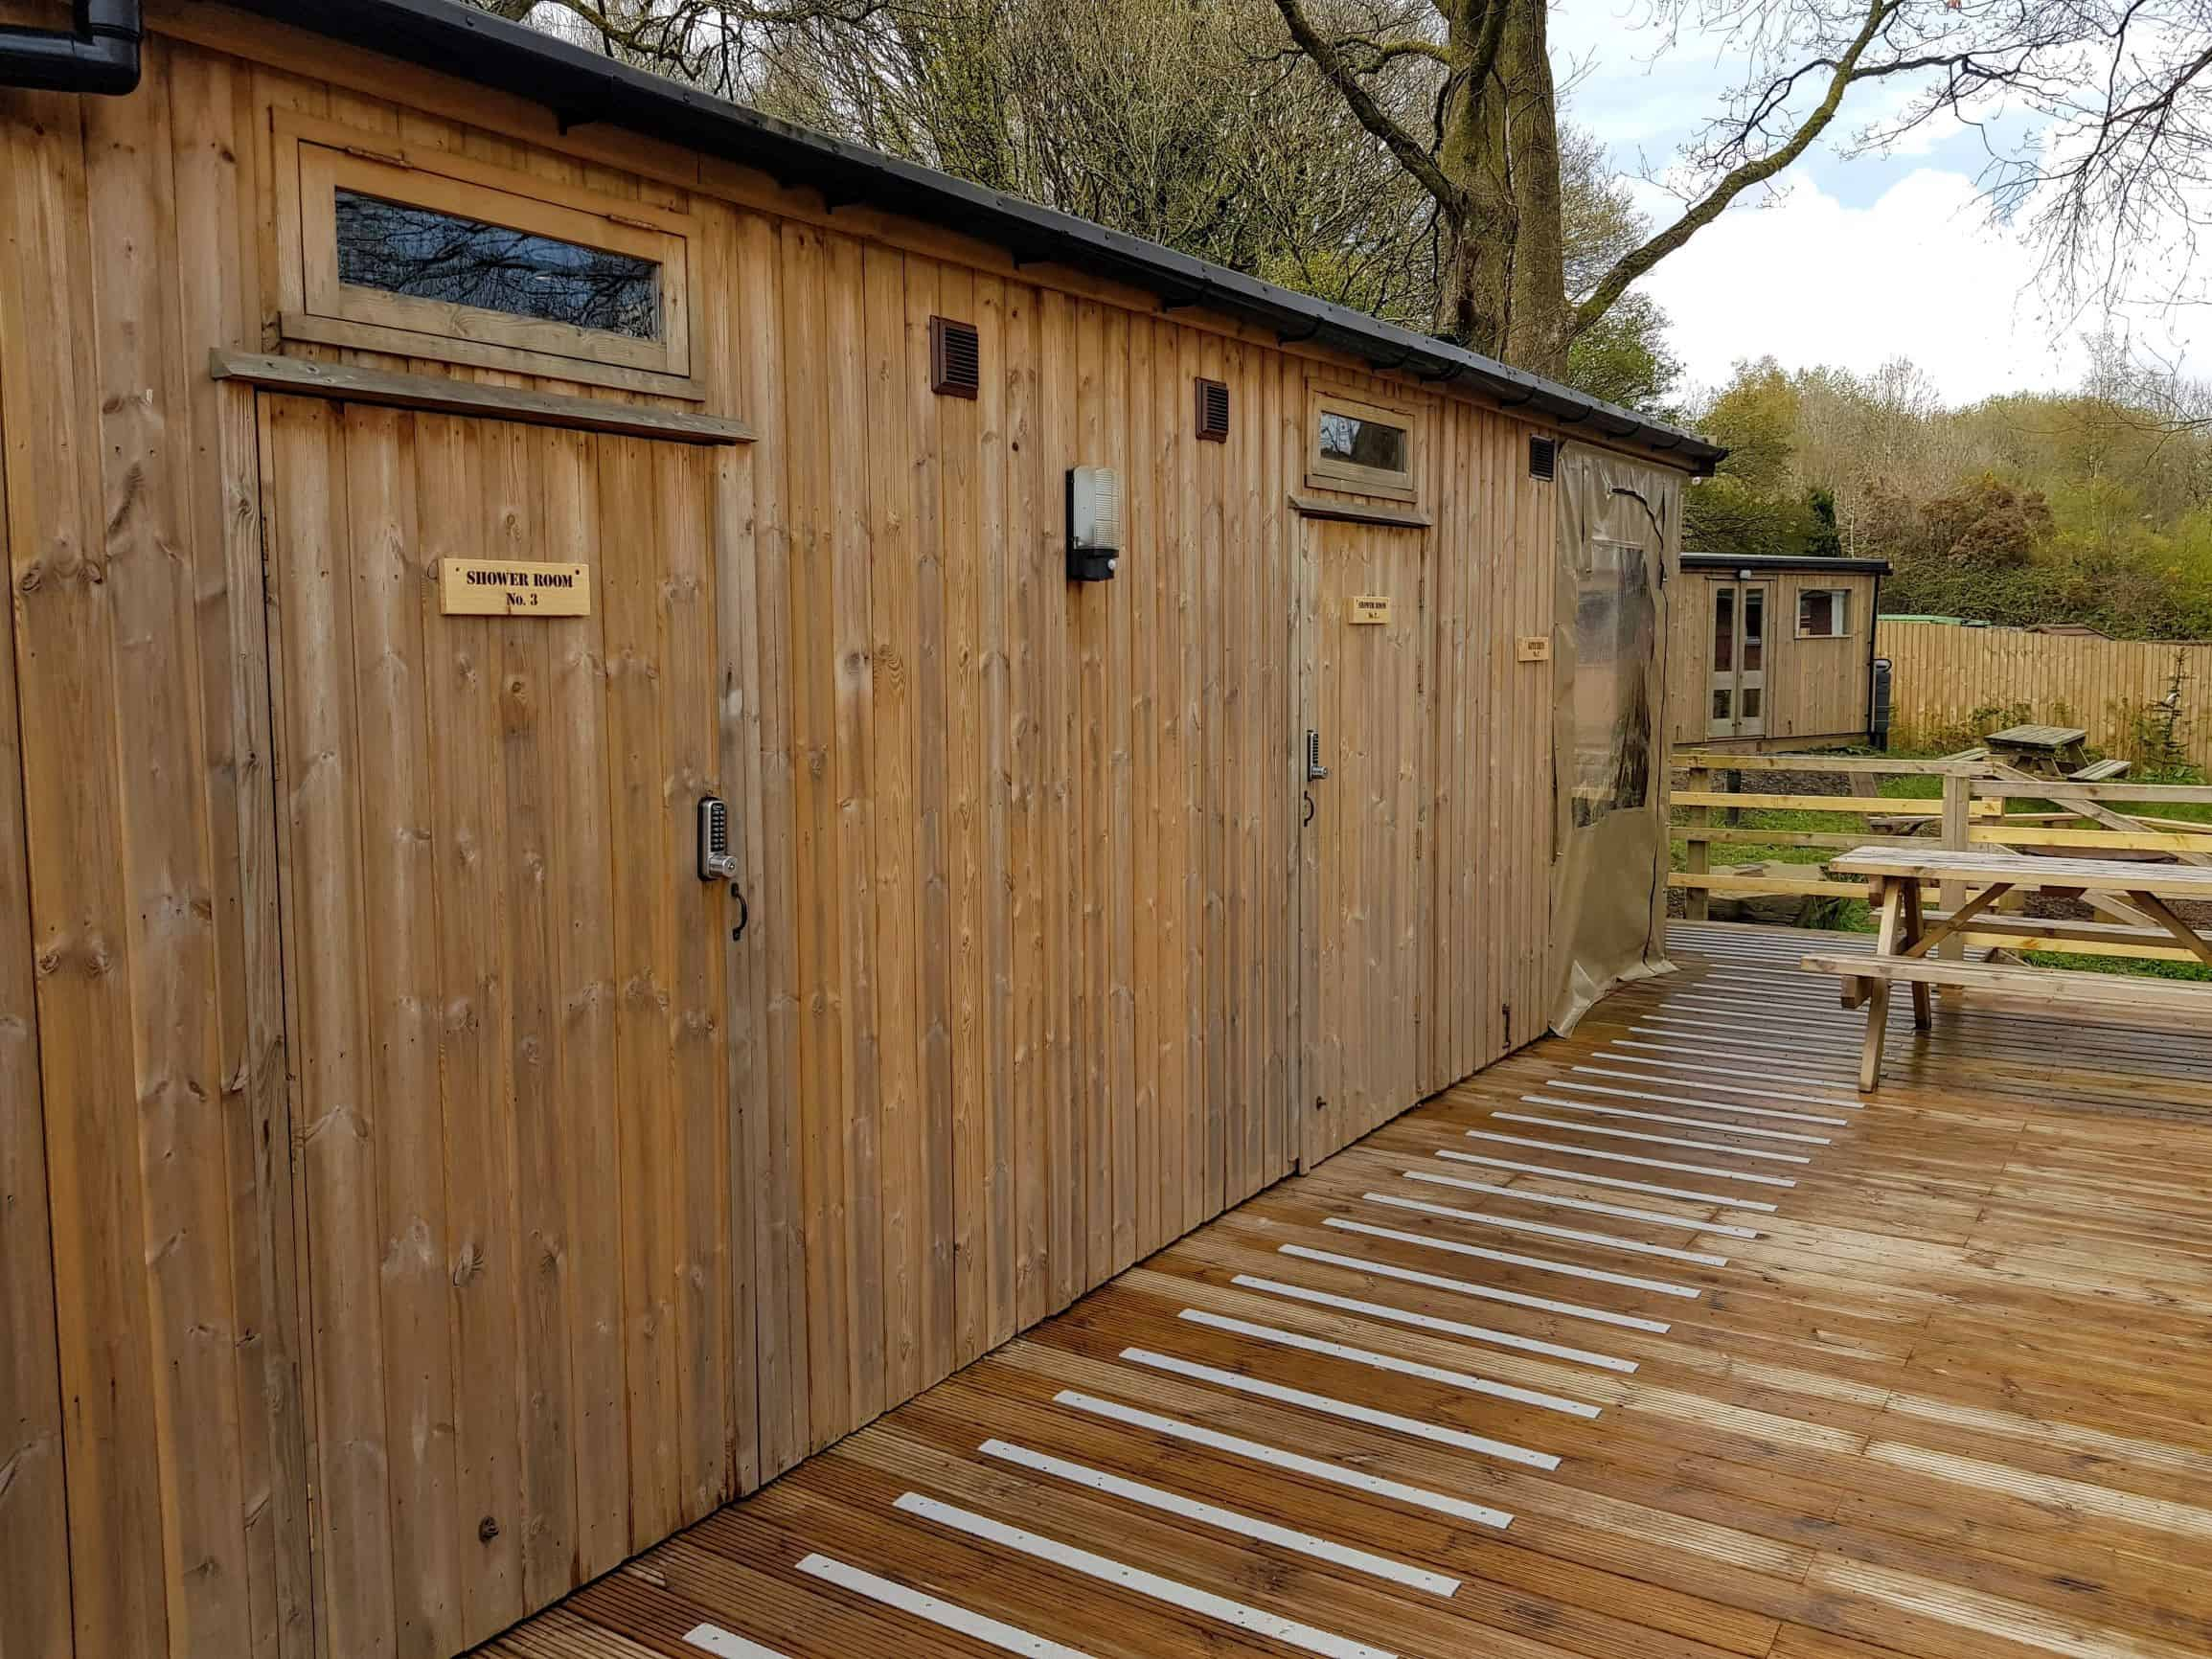 Facilities cabin with showers, kitchens, picnic table